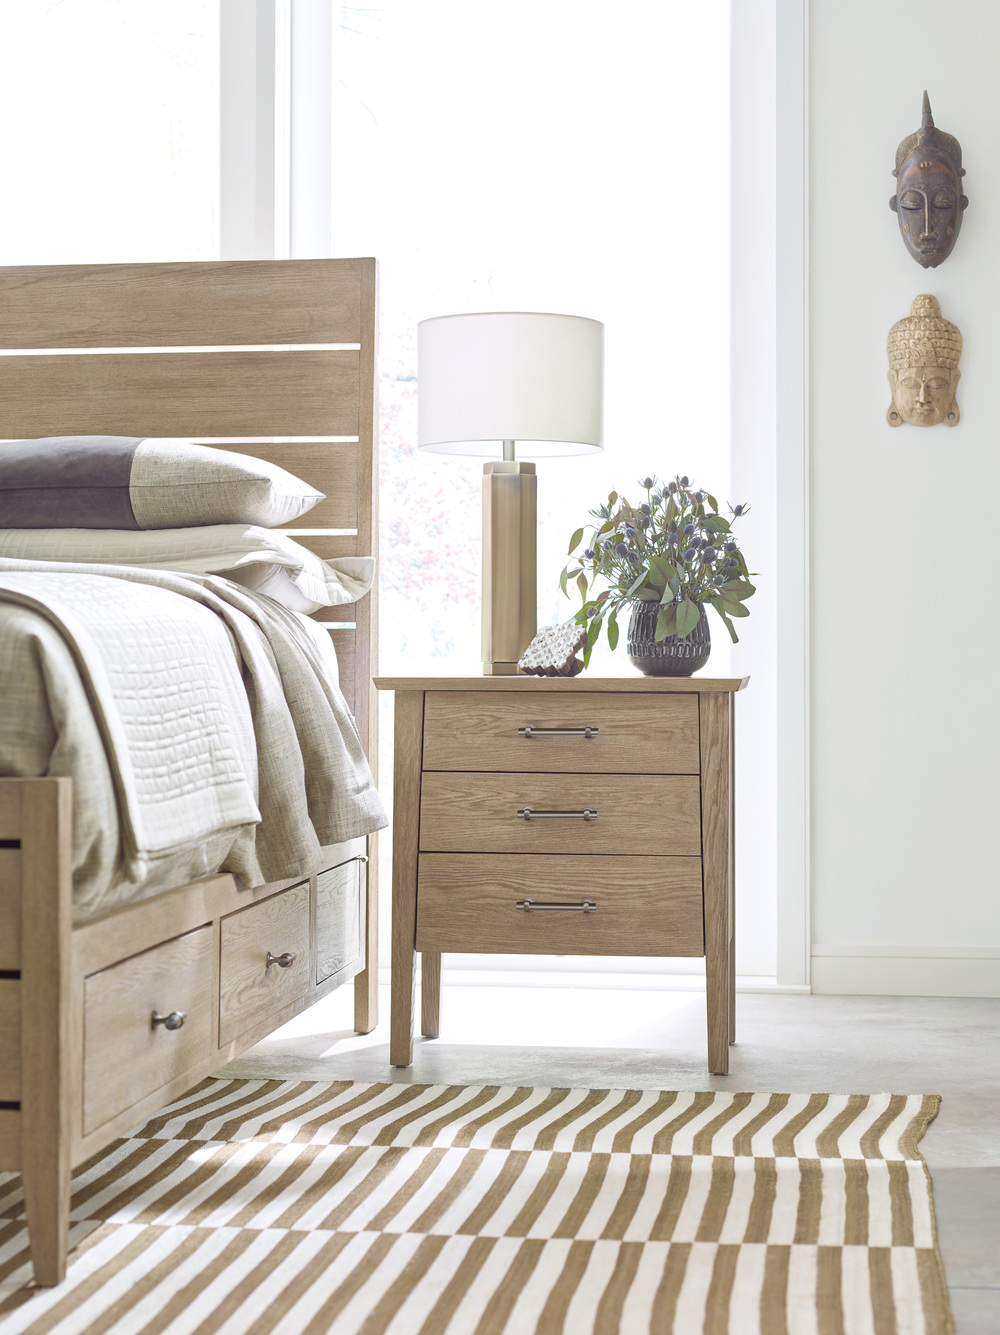 Kincaid Furniture - Incline Oak High Bed with Storage Rails